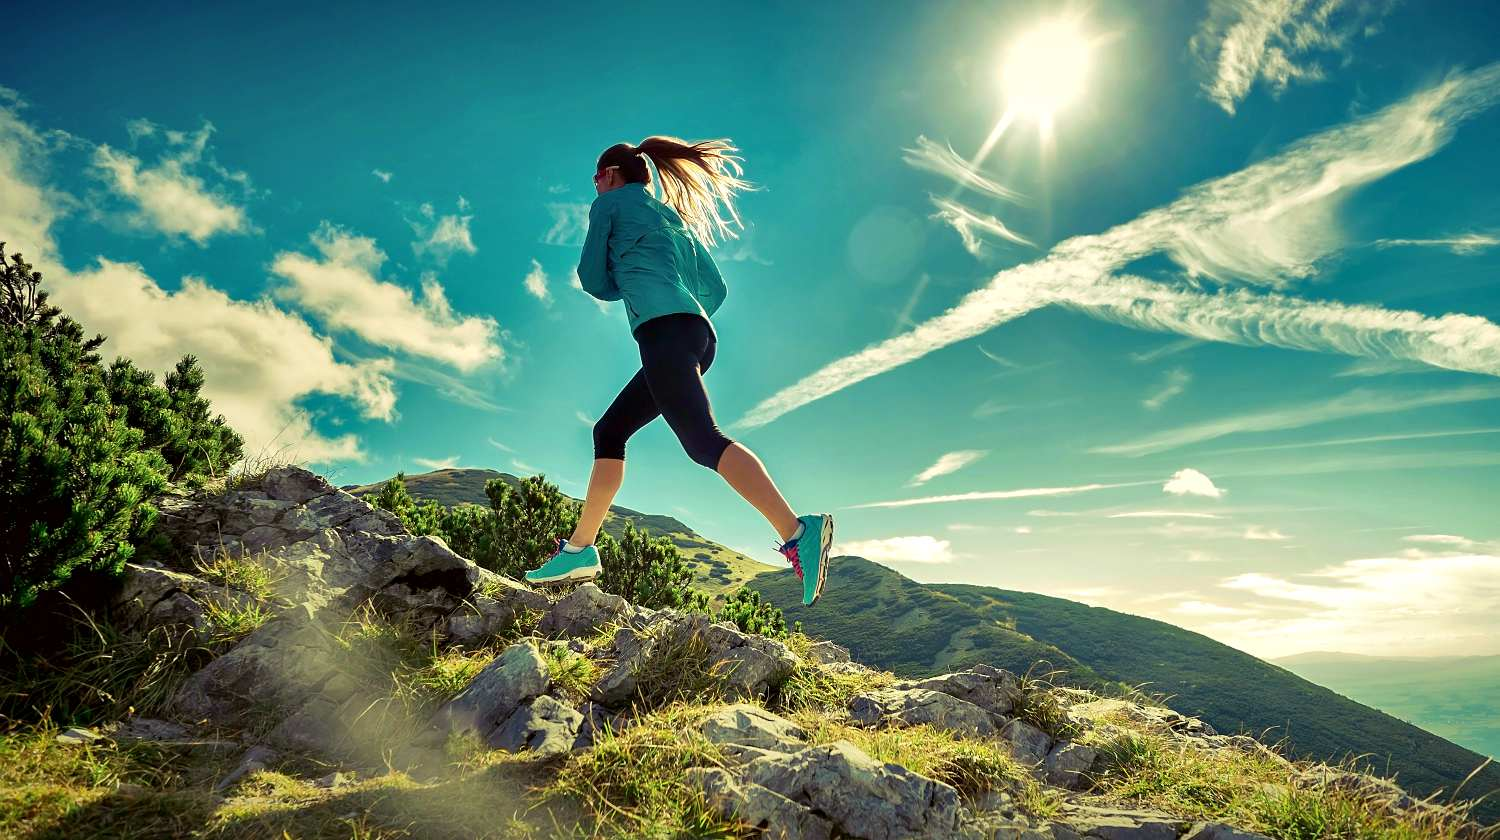 Featured   Female running in mountains under sunlight   Running Zigzag: Is It Actually Effective In Threat Evasion?